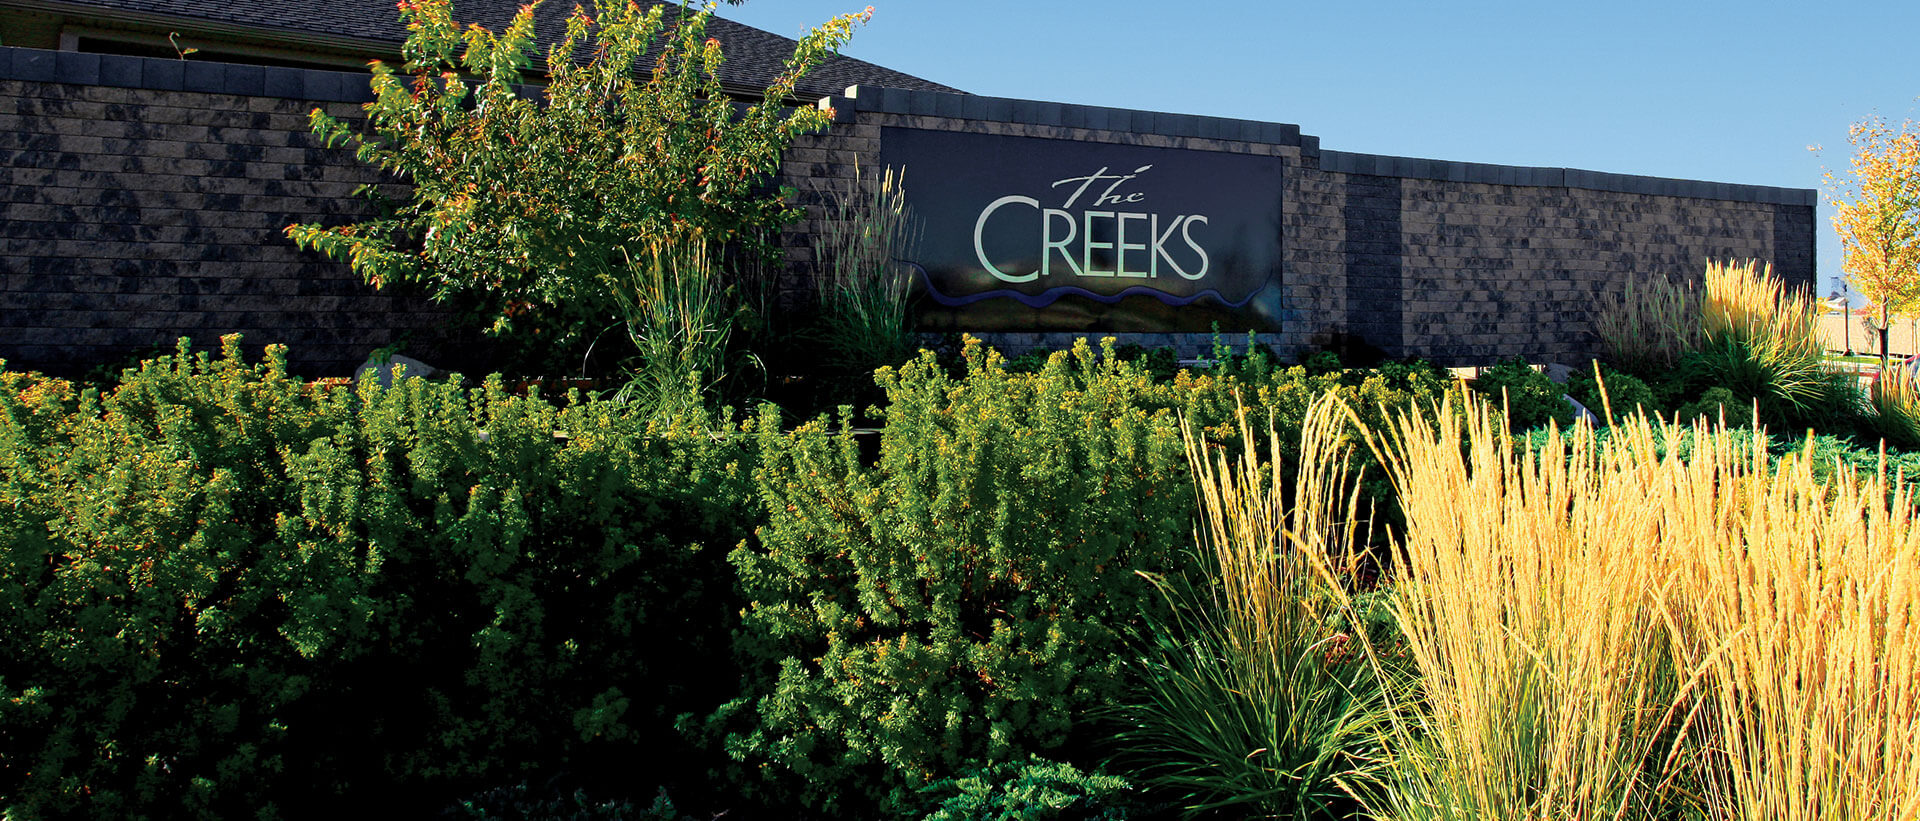 Homes for sale in The Creeks